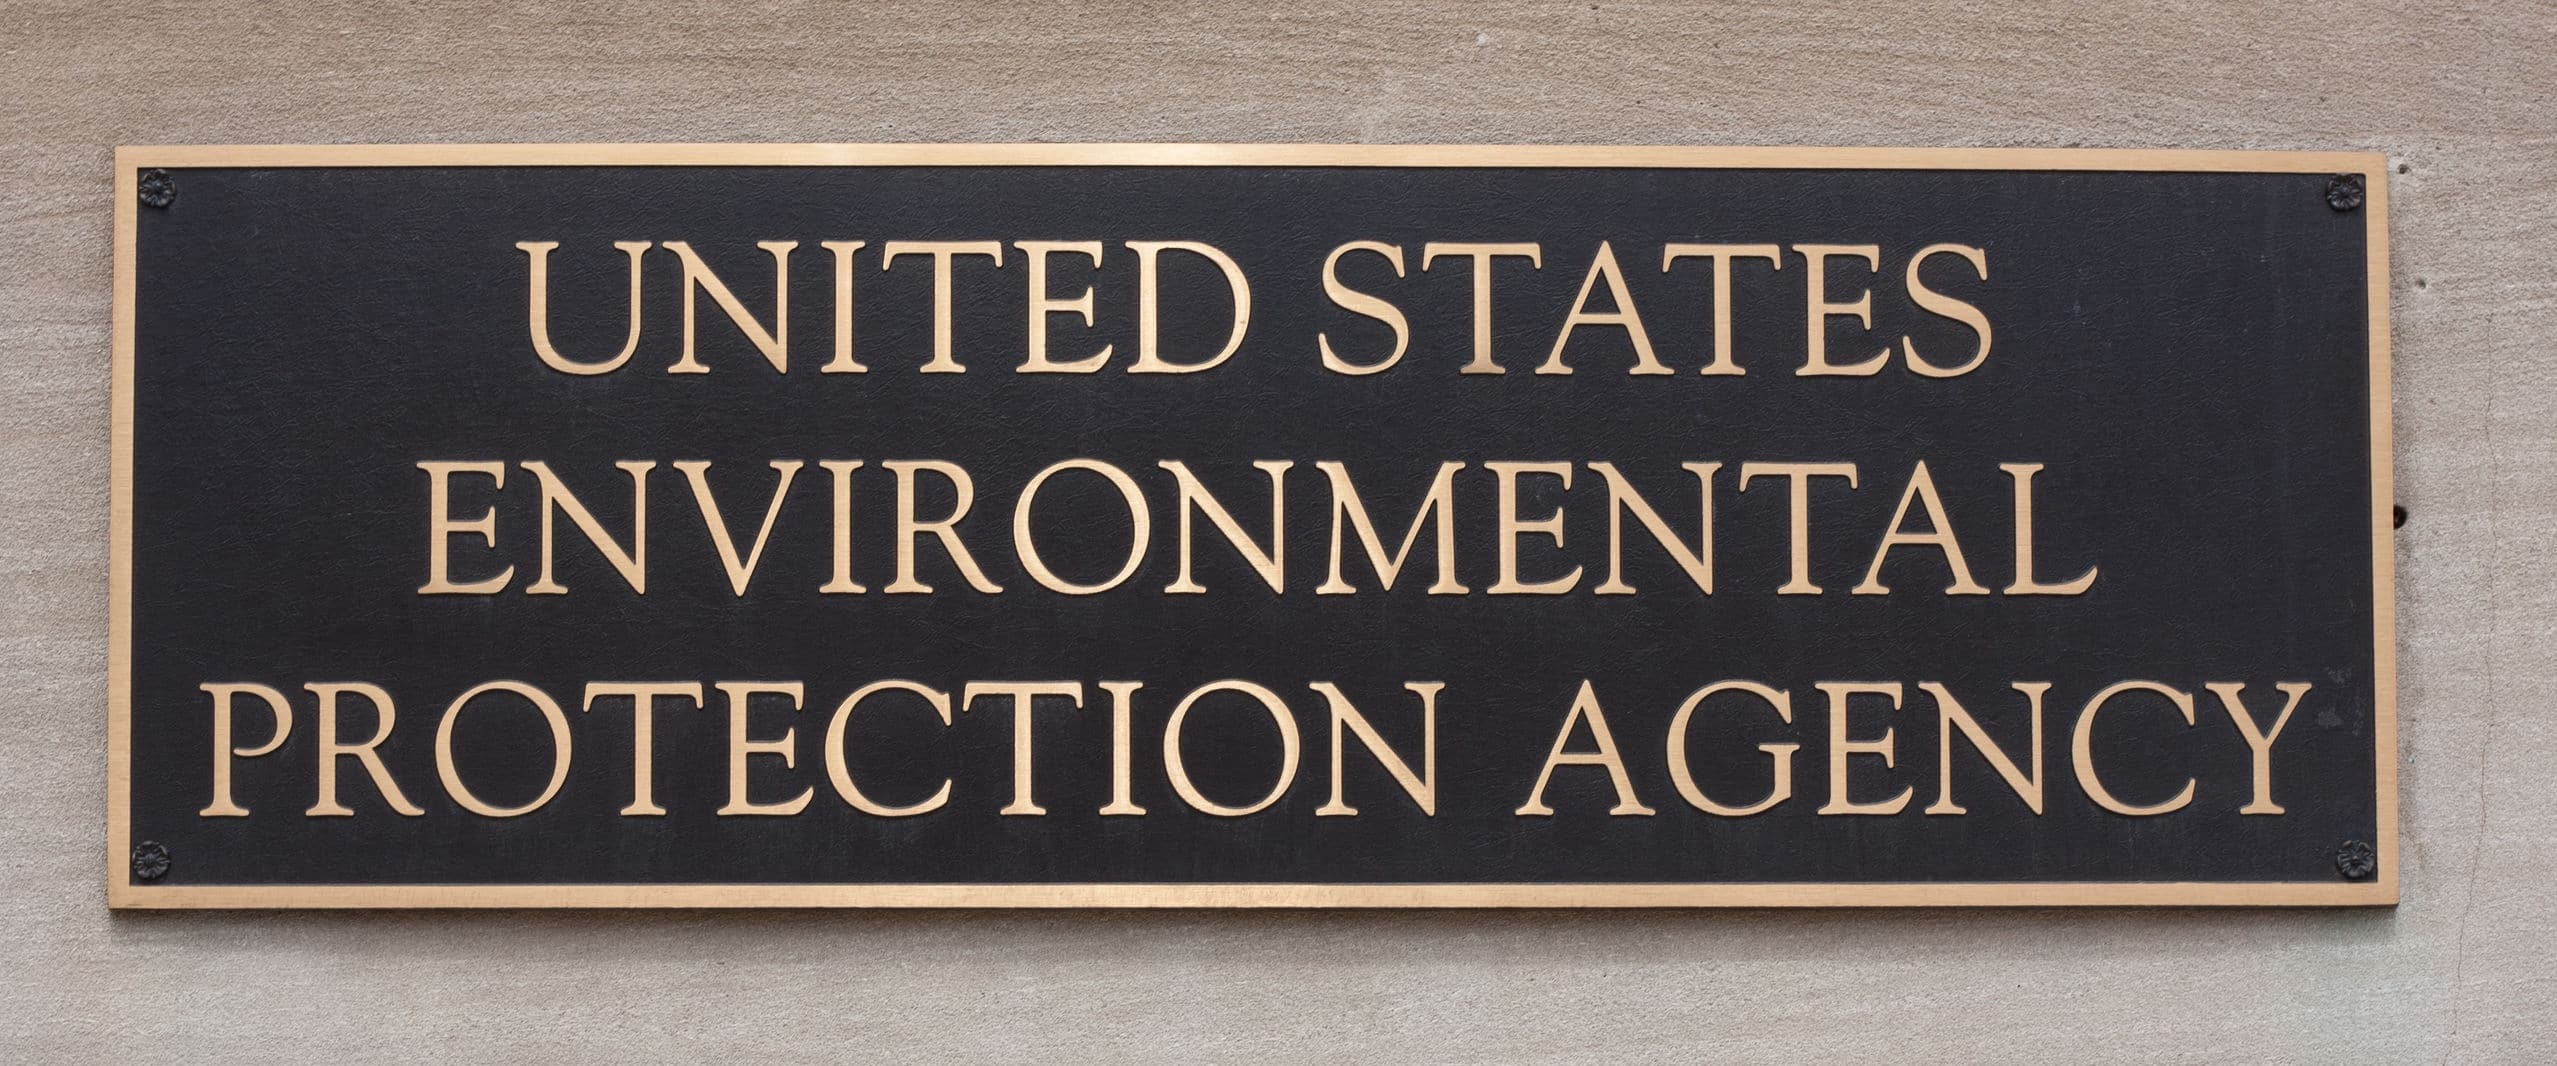 United States Environmental Protection Agency sign